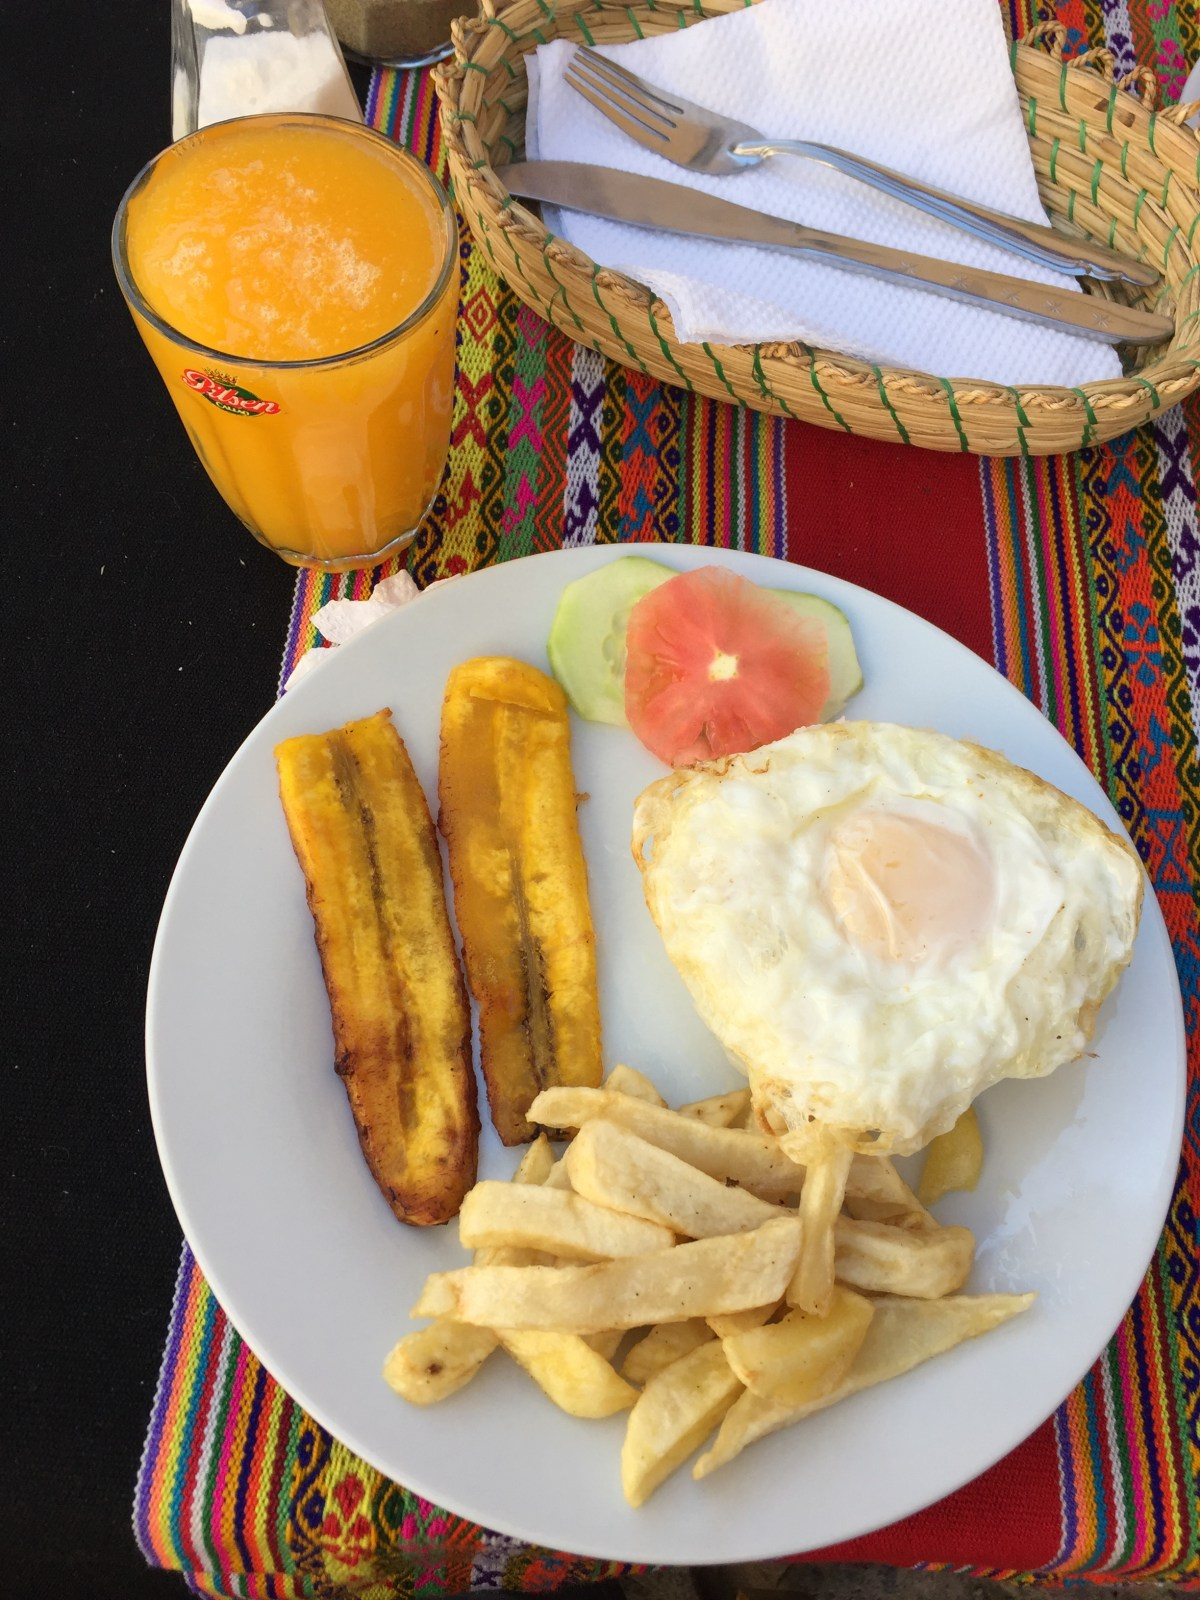 Cuban rice w/ egg and banana @ Ollantaytambo, Peru